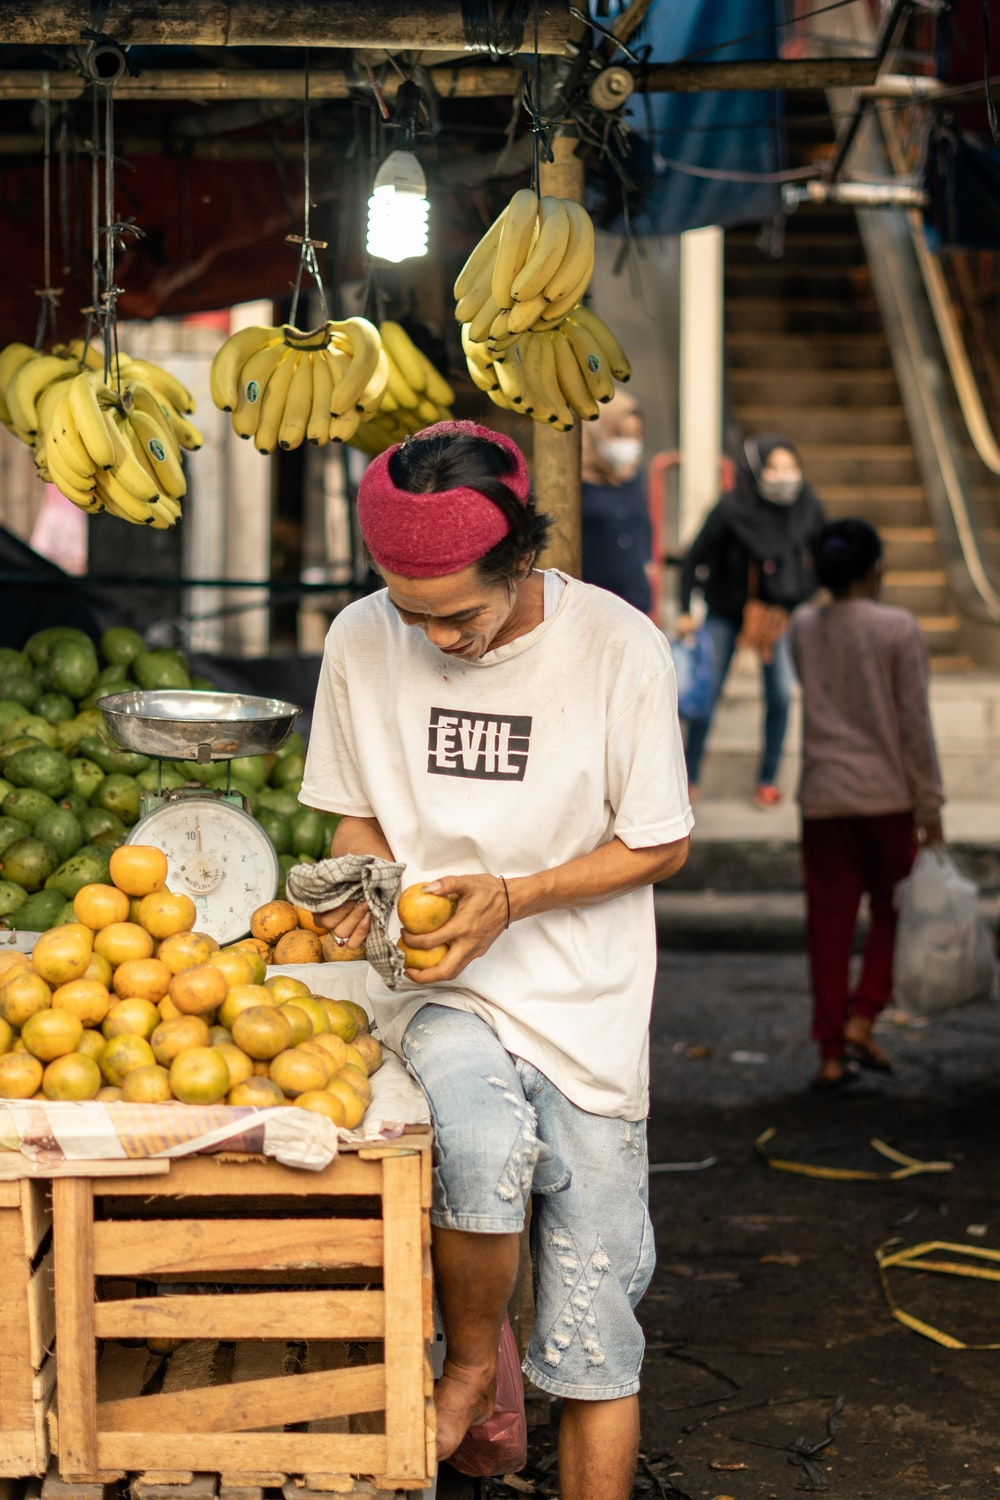 man in white shirt and red knit cap holding yellow banana fruit